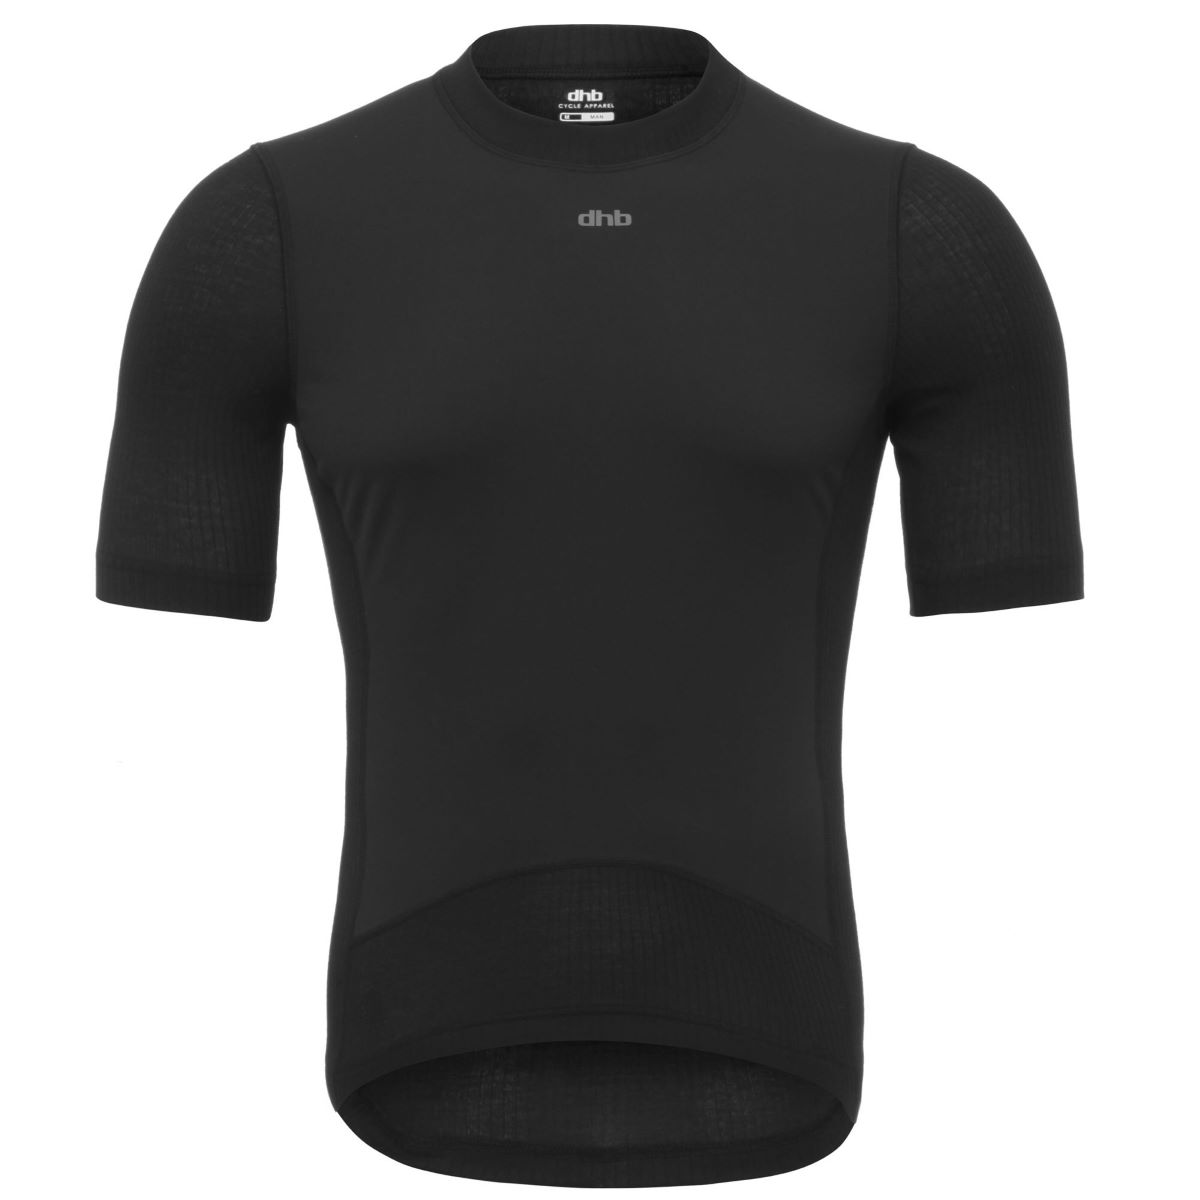 dhb Aeron Windproof Short Sleeve Baselayer